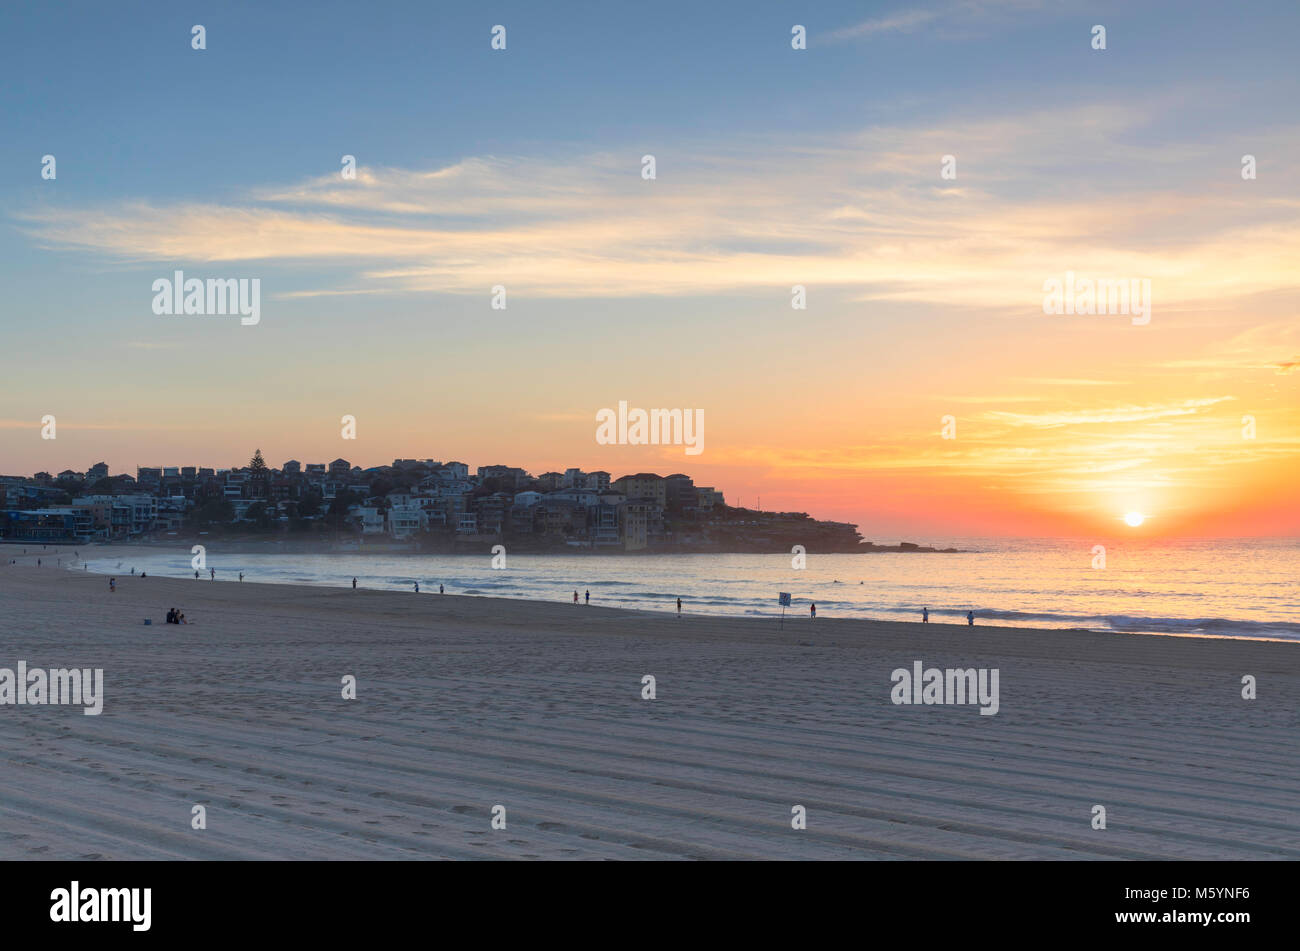 Bondi Beach at sunrise, Sydney, New South Wales, Australia - Stock Image